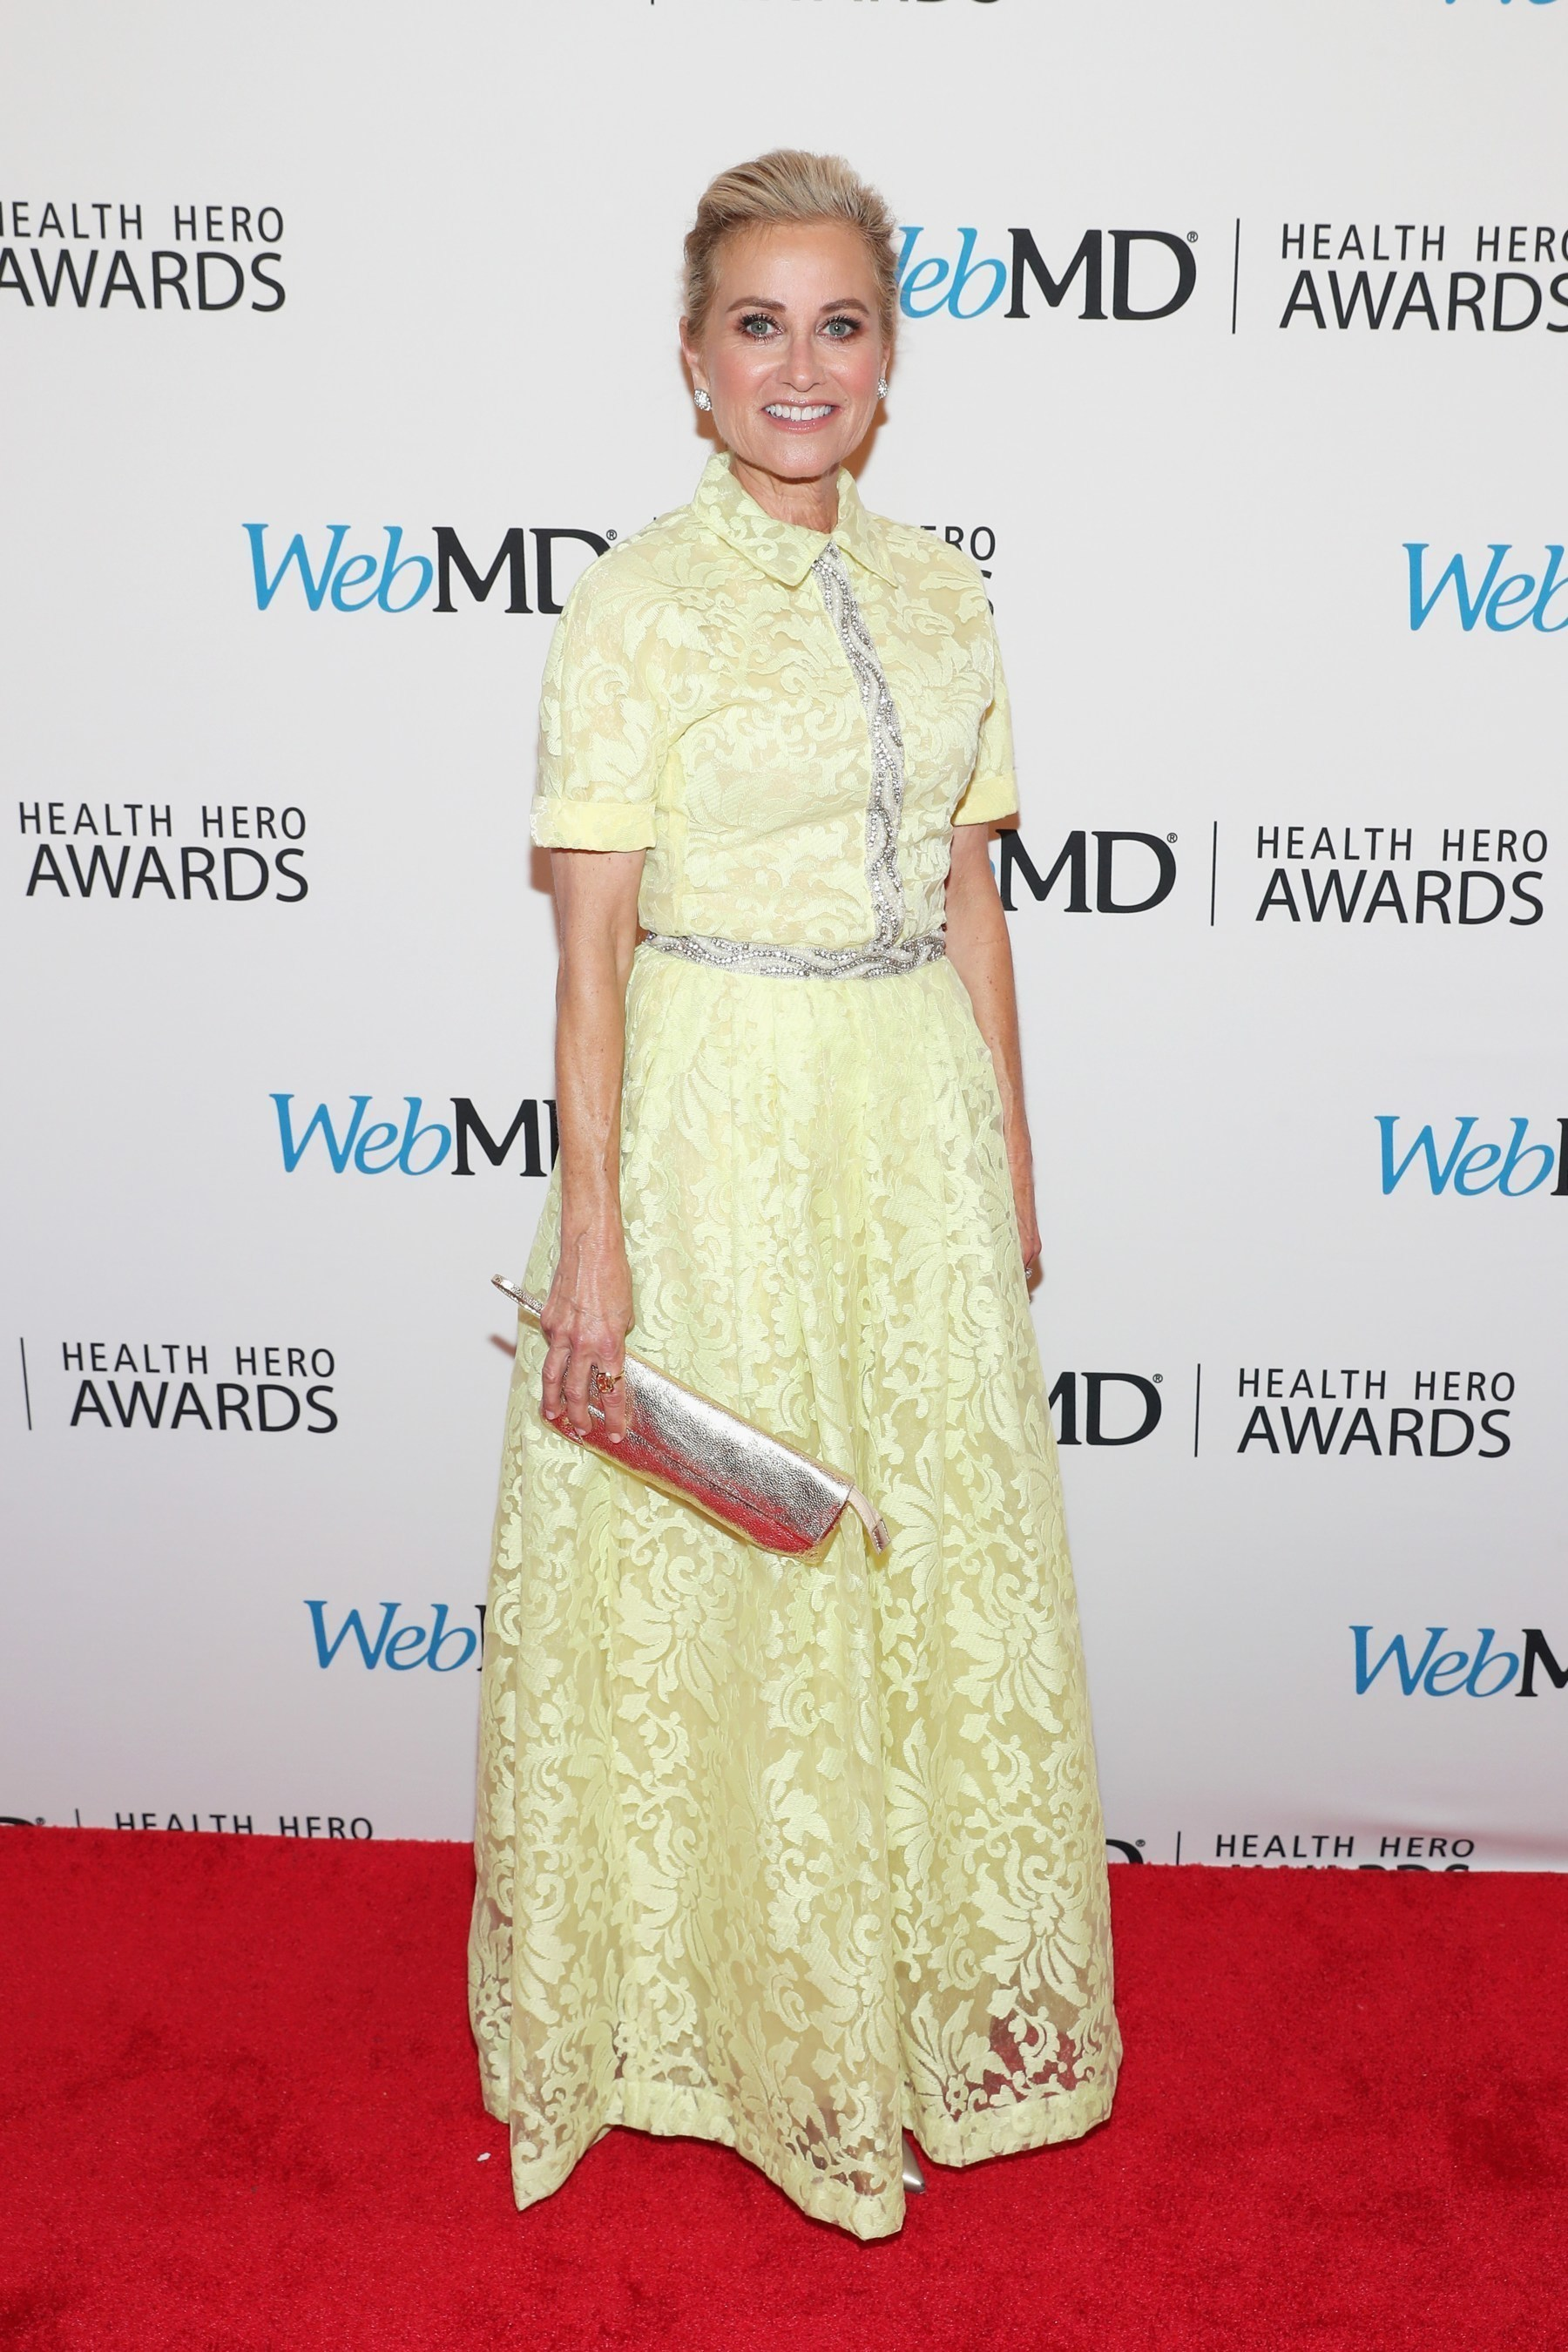 Maureen McCormick attends the  2016 WebMD Health Heroes Awards on November 3, 2016 in New York City.